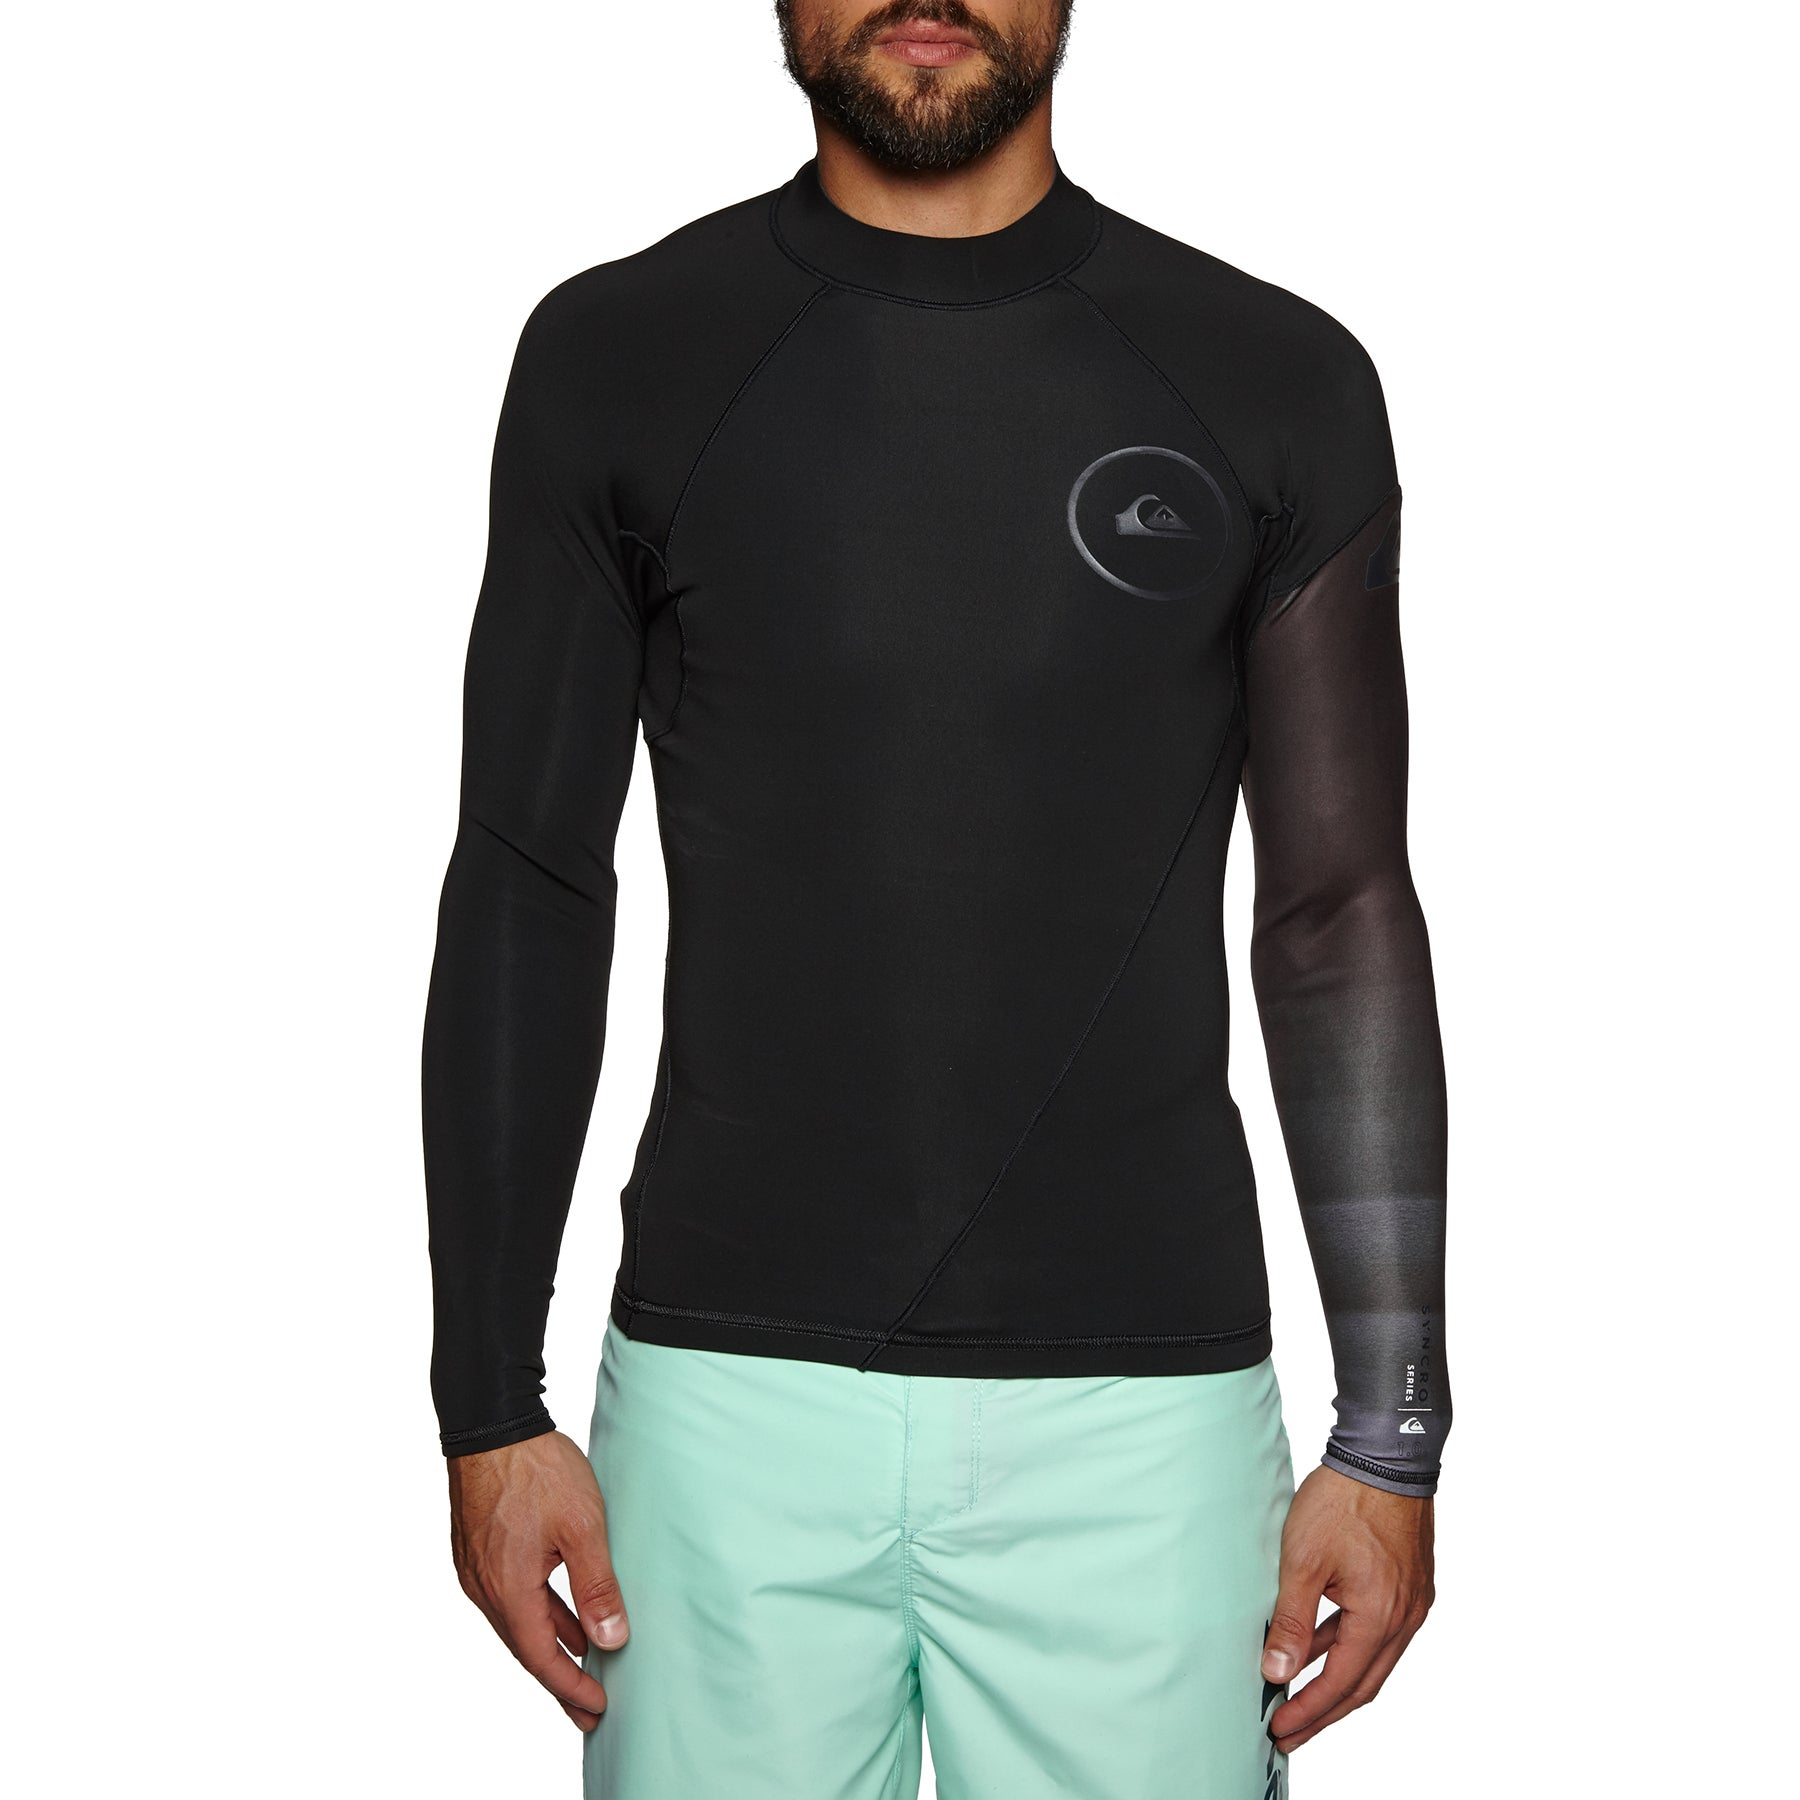 Quiksilver Syncro 1mm New Wave Wetsuit